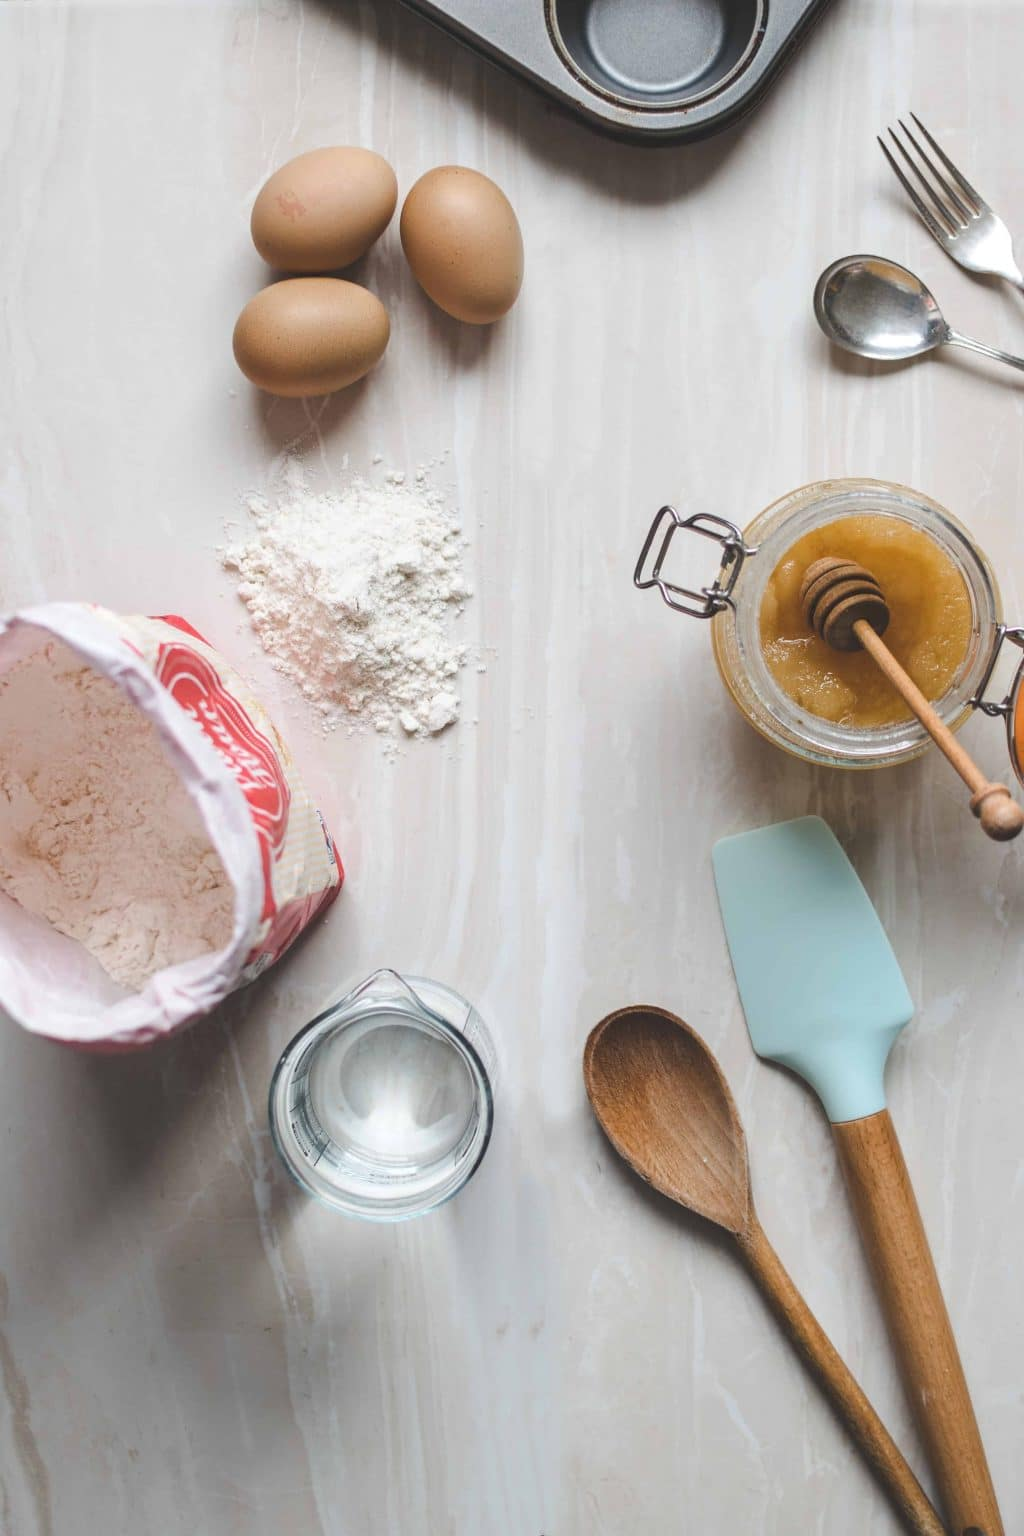 Pastry Basics: Ingredient Function (and Why It's Important